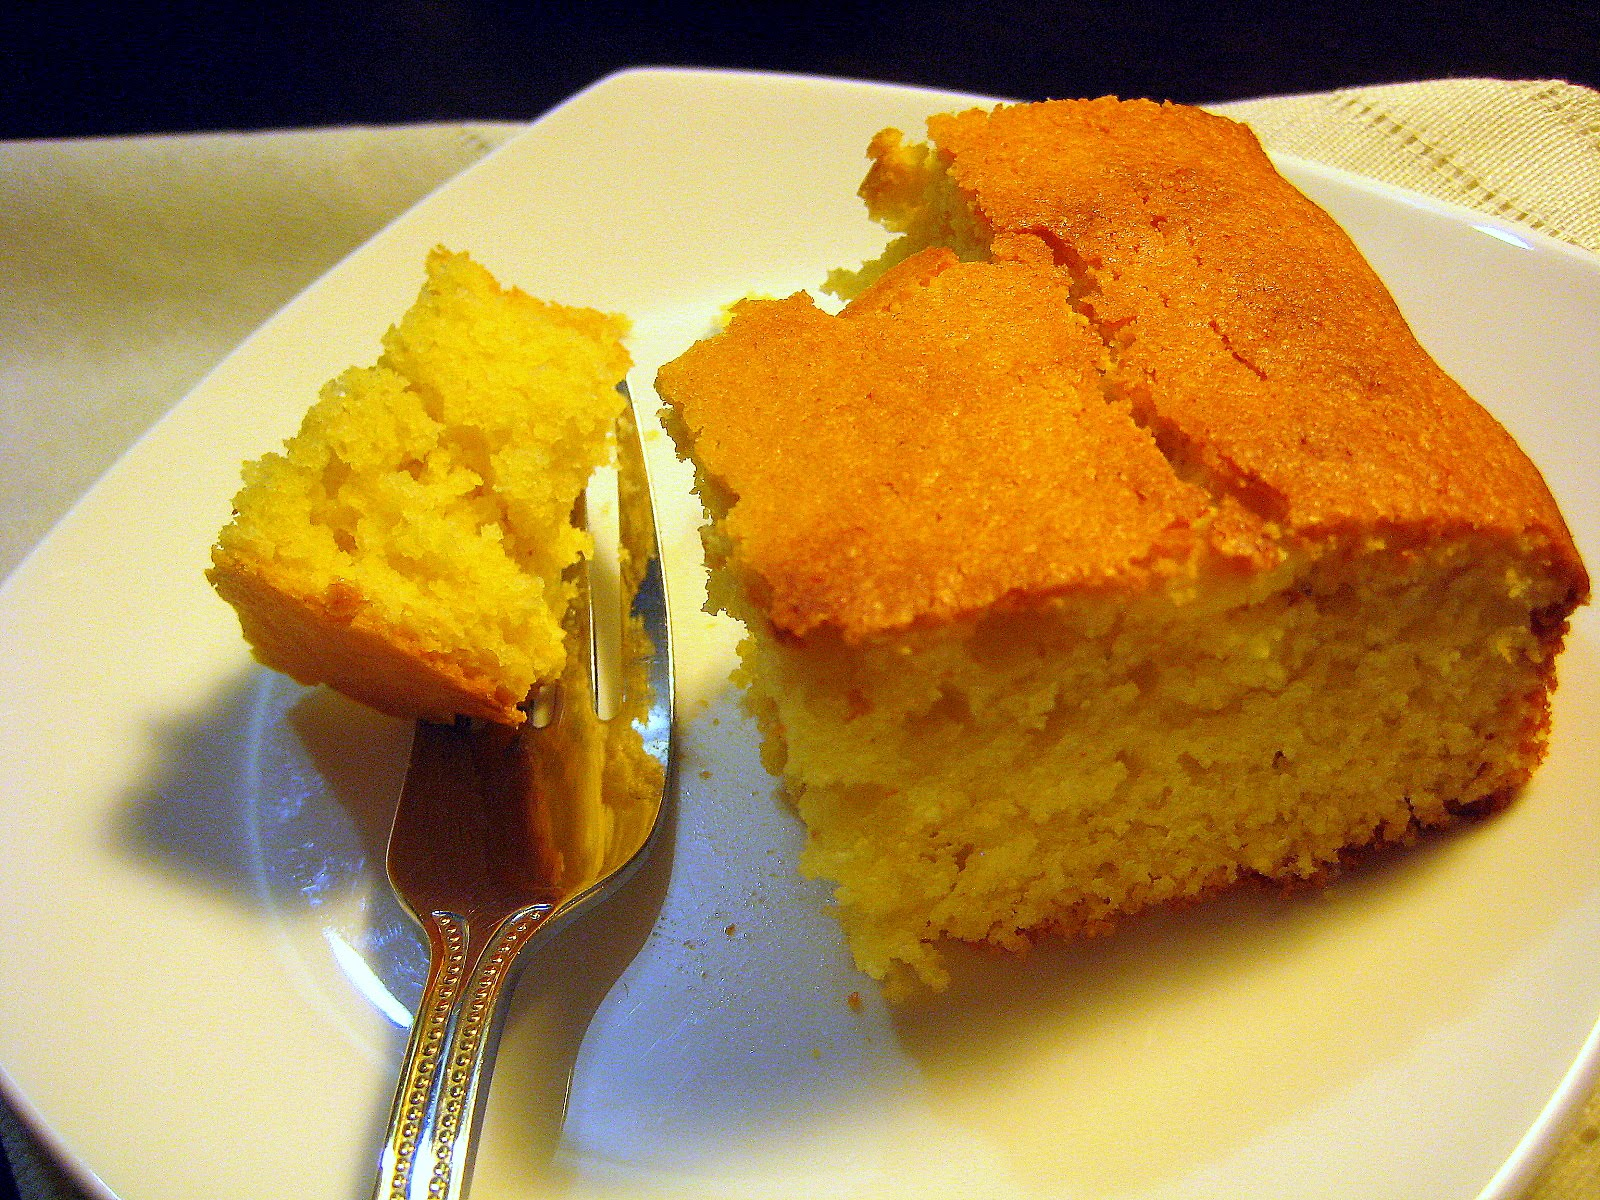 Food Tastes Yummy: EASY ORANGE CORNMEAL CAKE